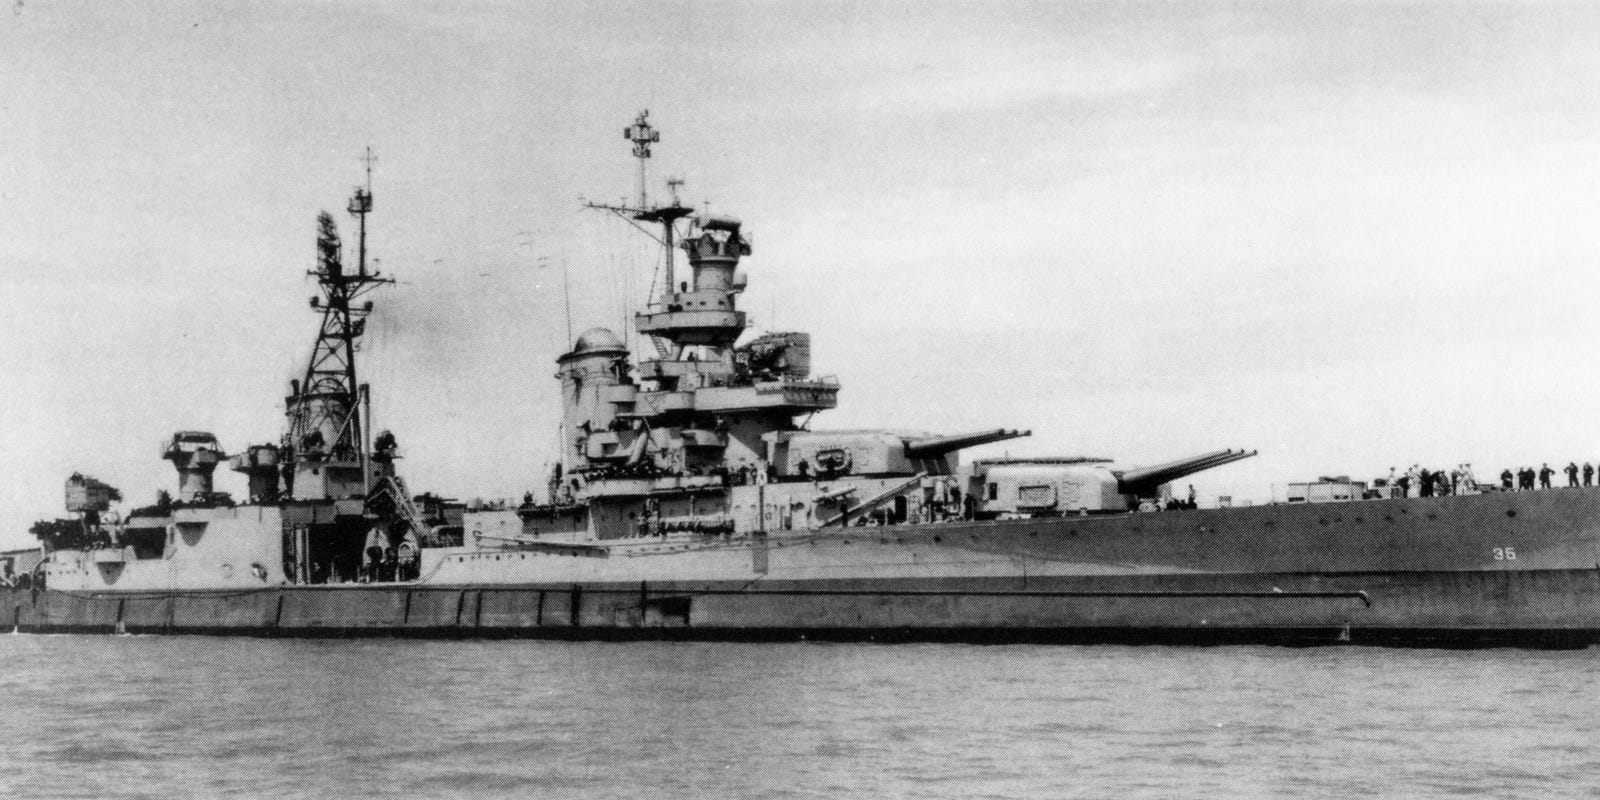 Don Howison, the oldest remaining survivor of USS Indianapolis, dead at 98